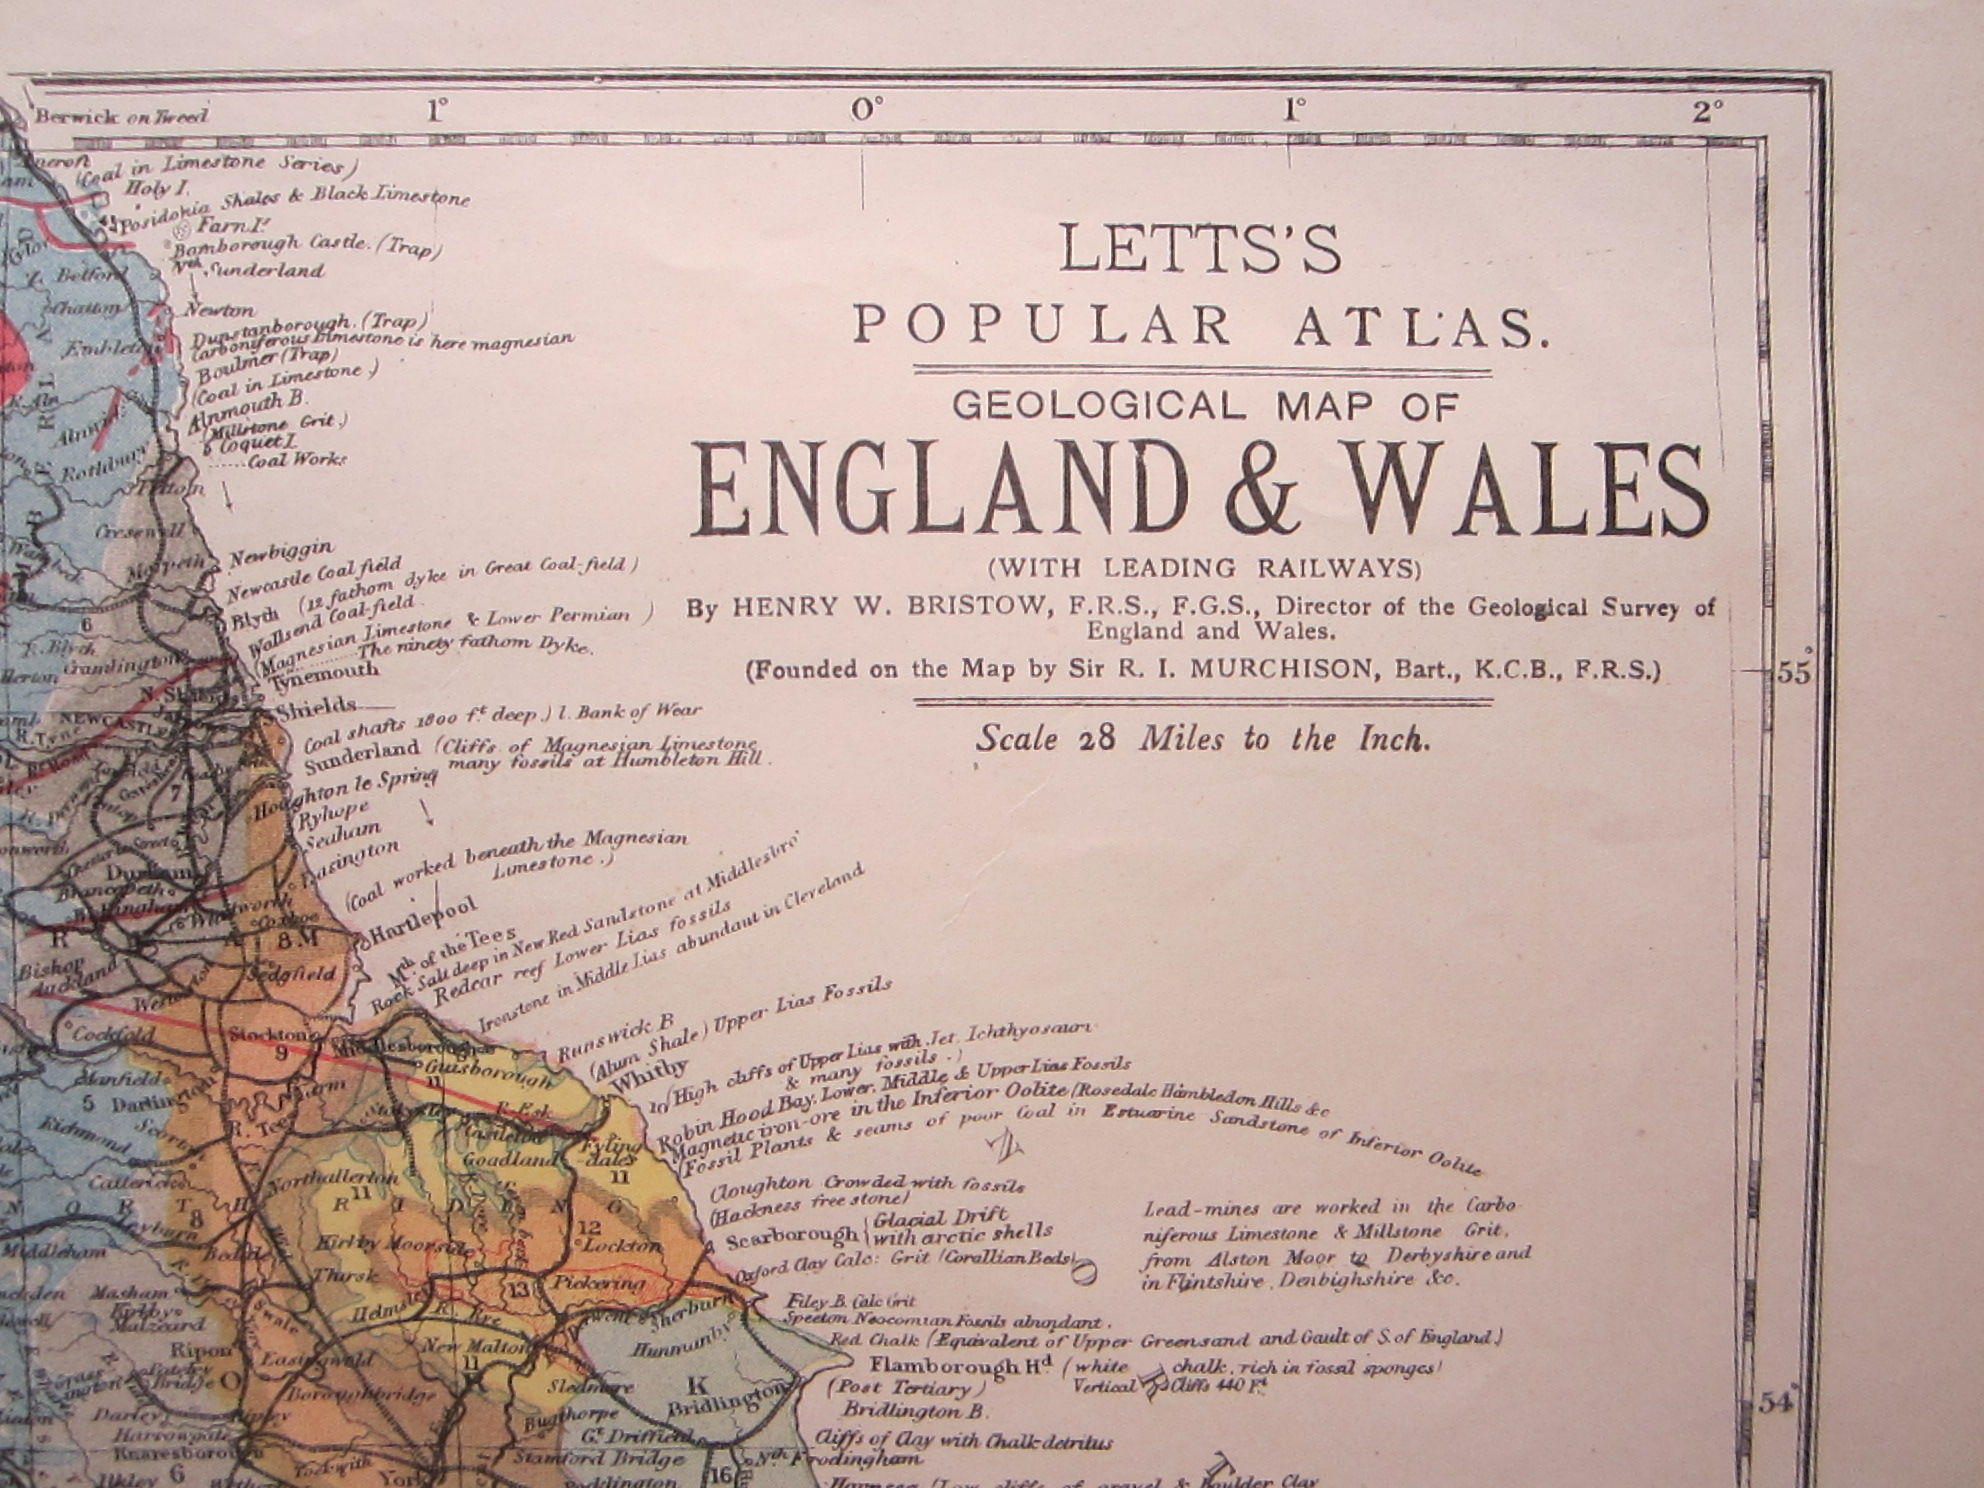 Geological Map of England & Wales (photo 2)